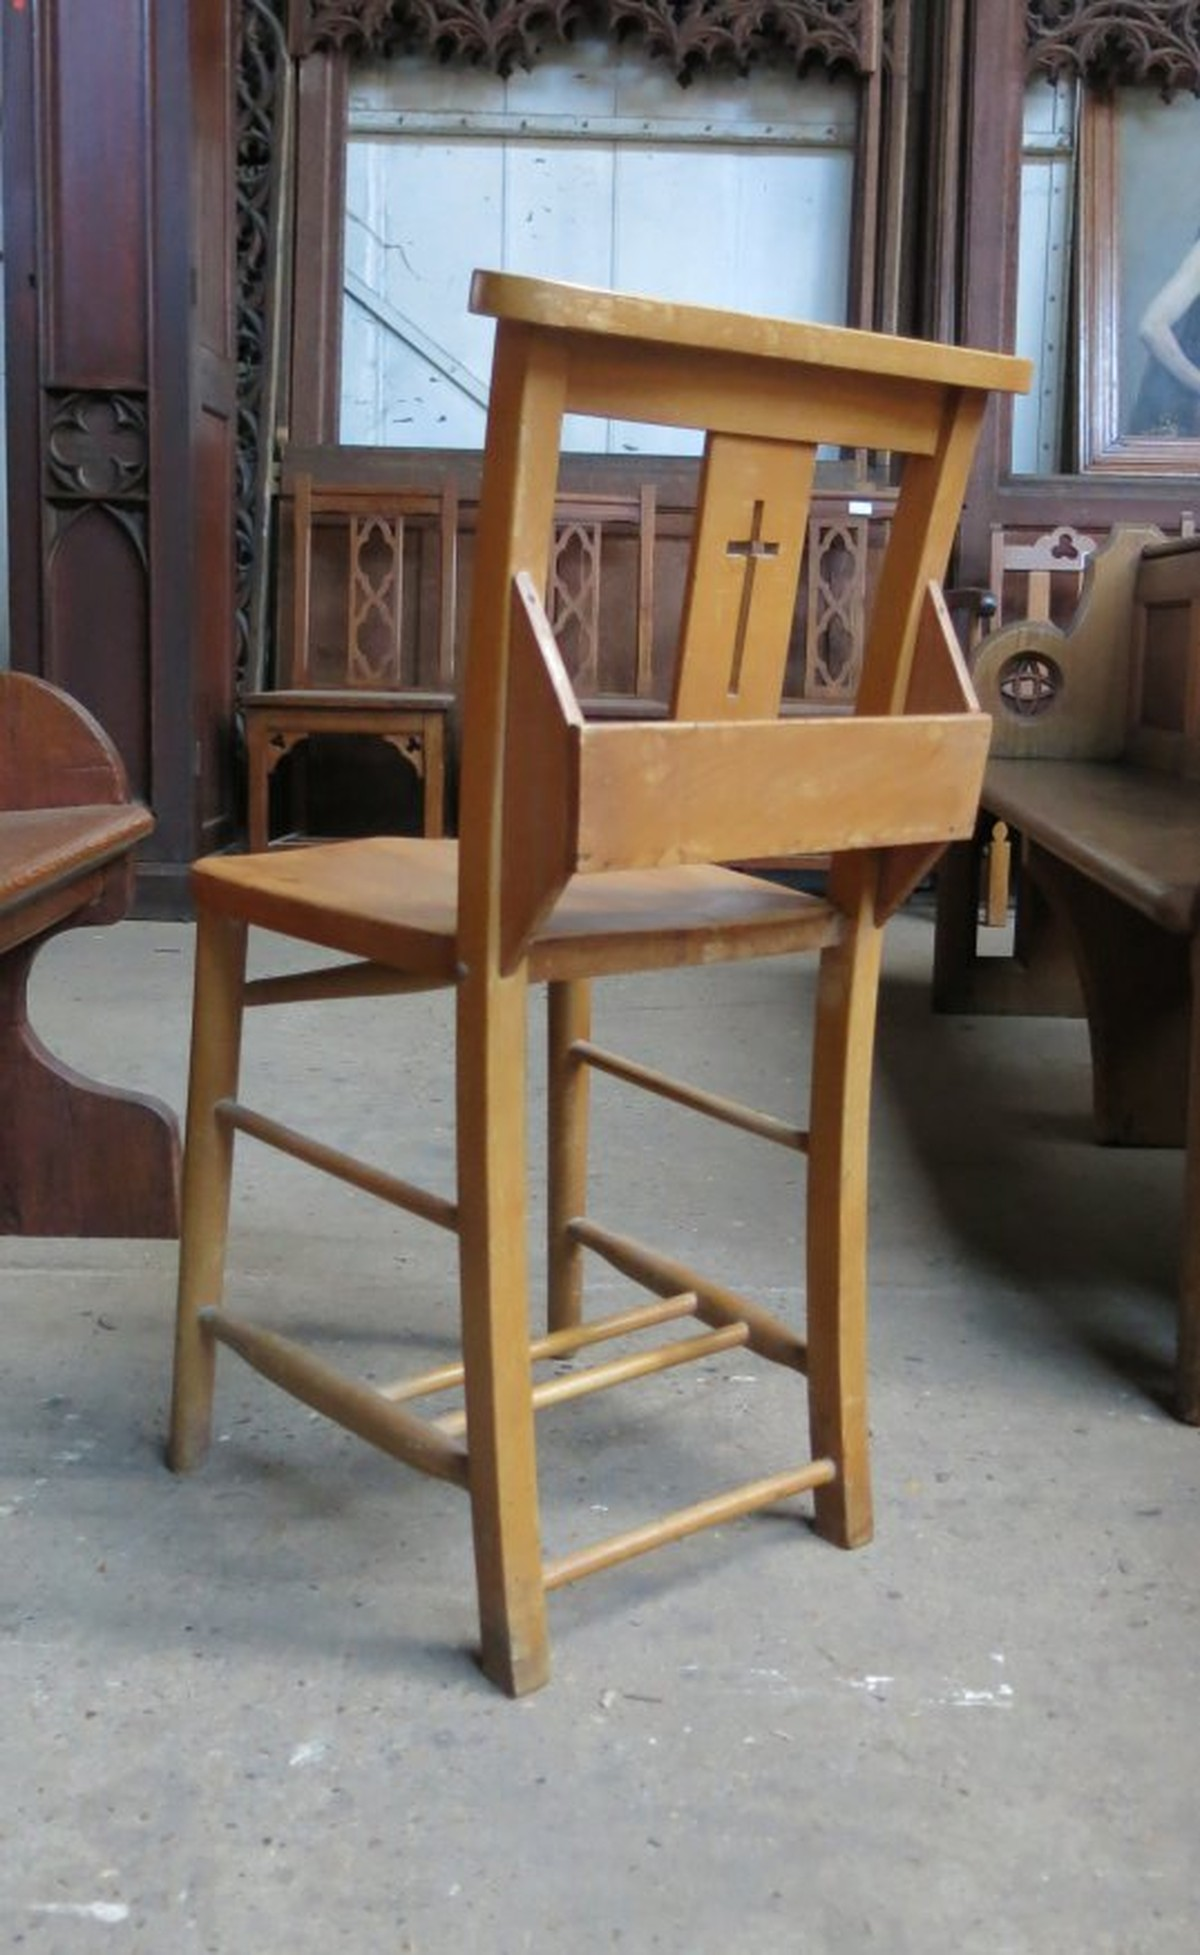 Secondhand Vintage And Reclaimed Church 50x Harlech Beech Cross Back Chapel Church Chairs E